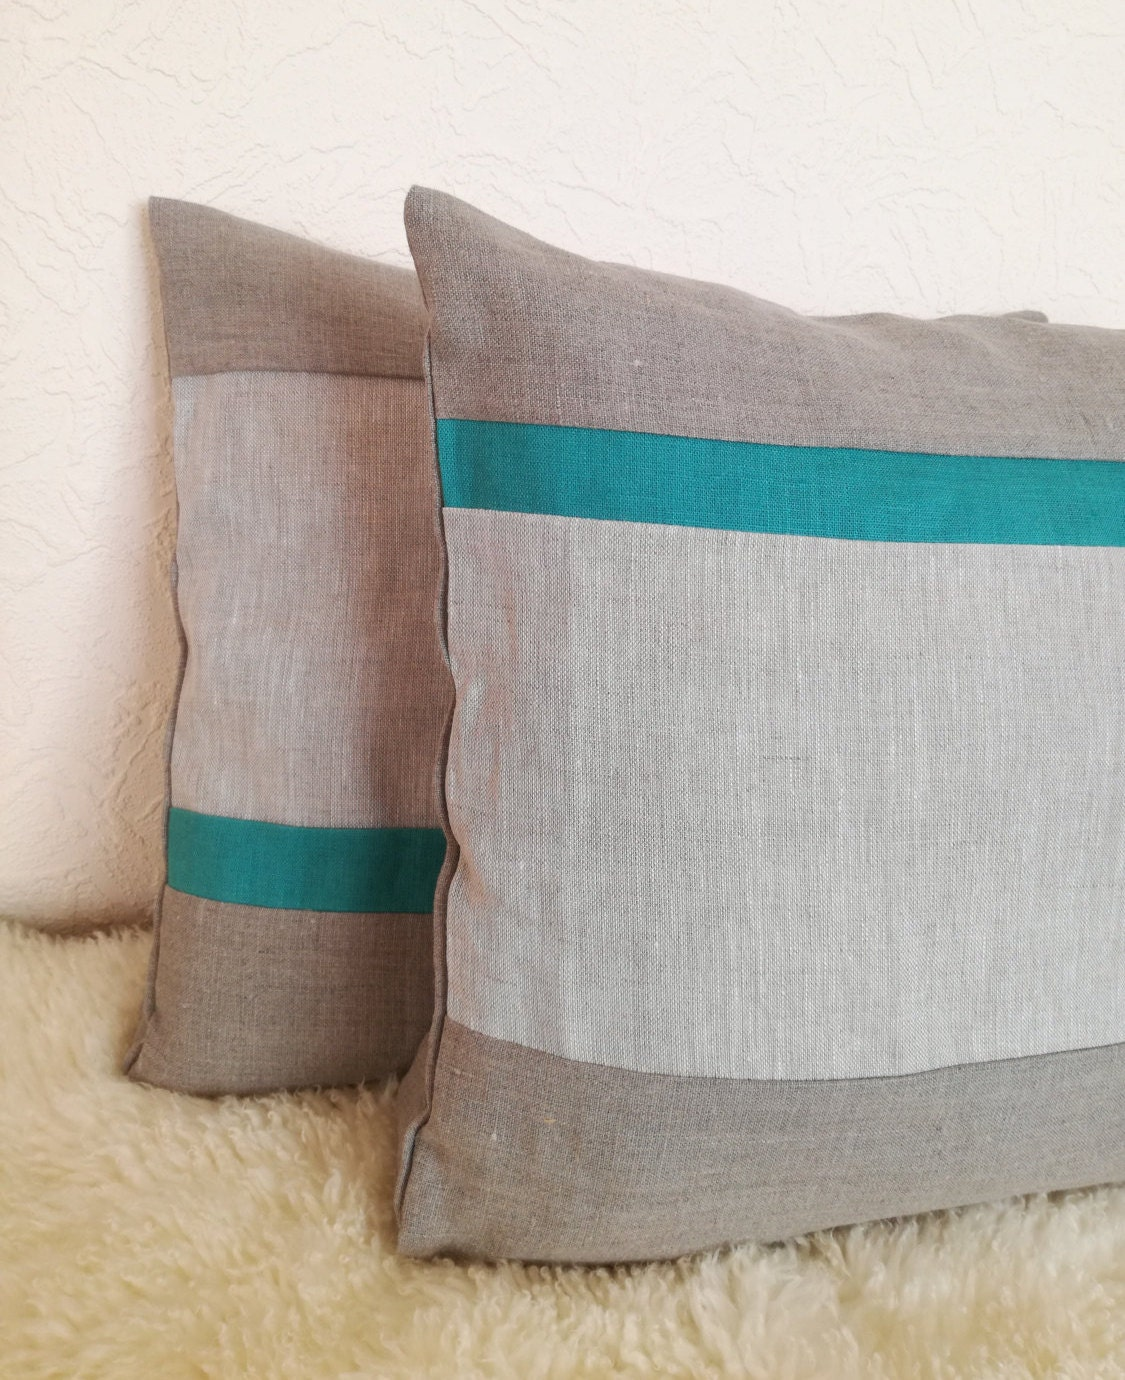 Teal Striped Throw Pillow Set Of 2 Linen Decorative Pillow Teal Grey Cushion Cover Linen Pillow Gray Pillow Cover Rustic Cushion